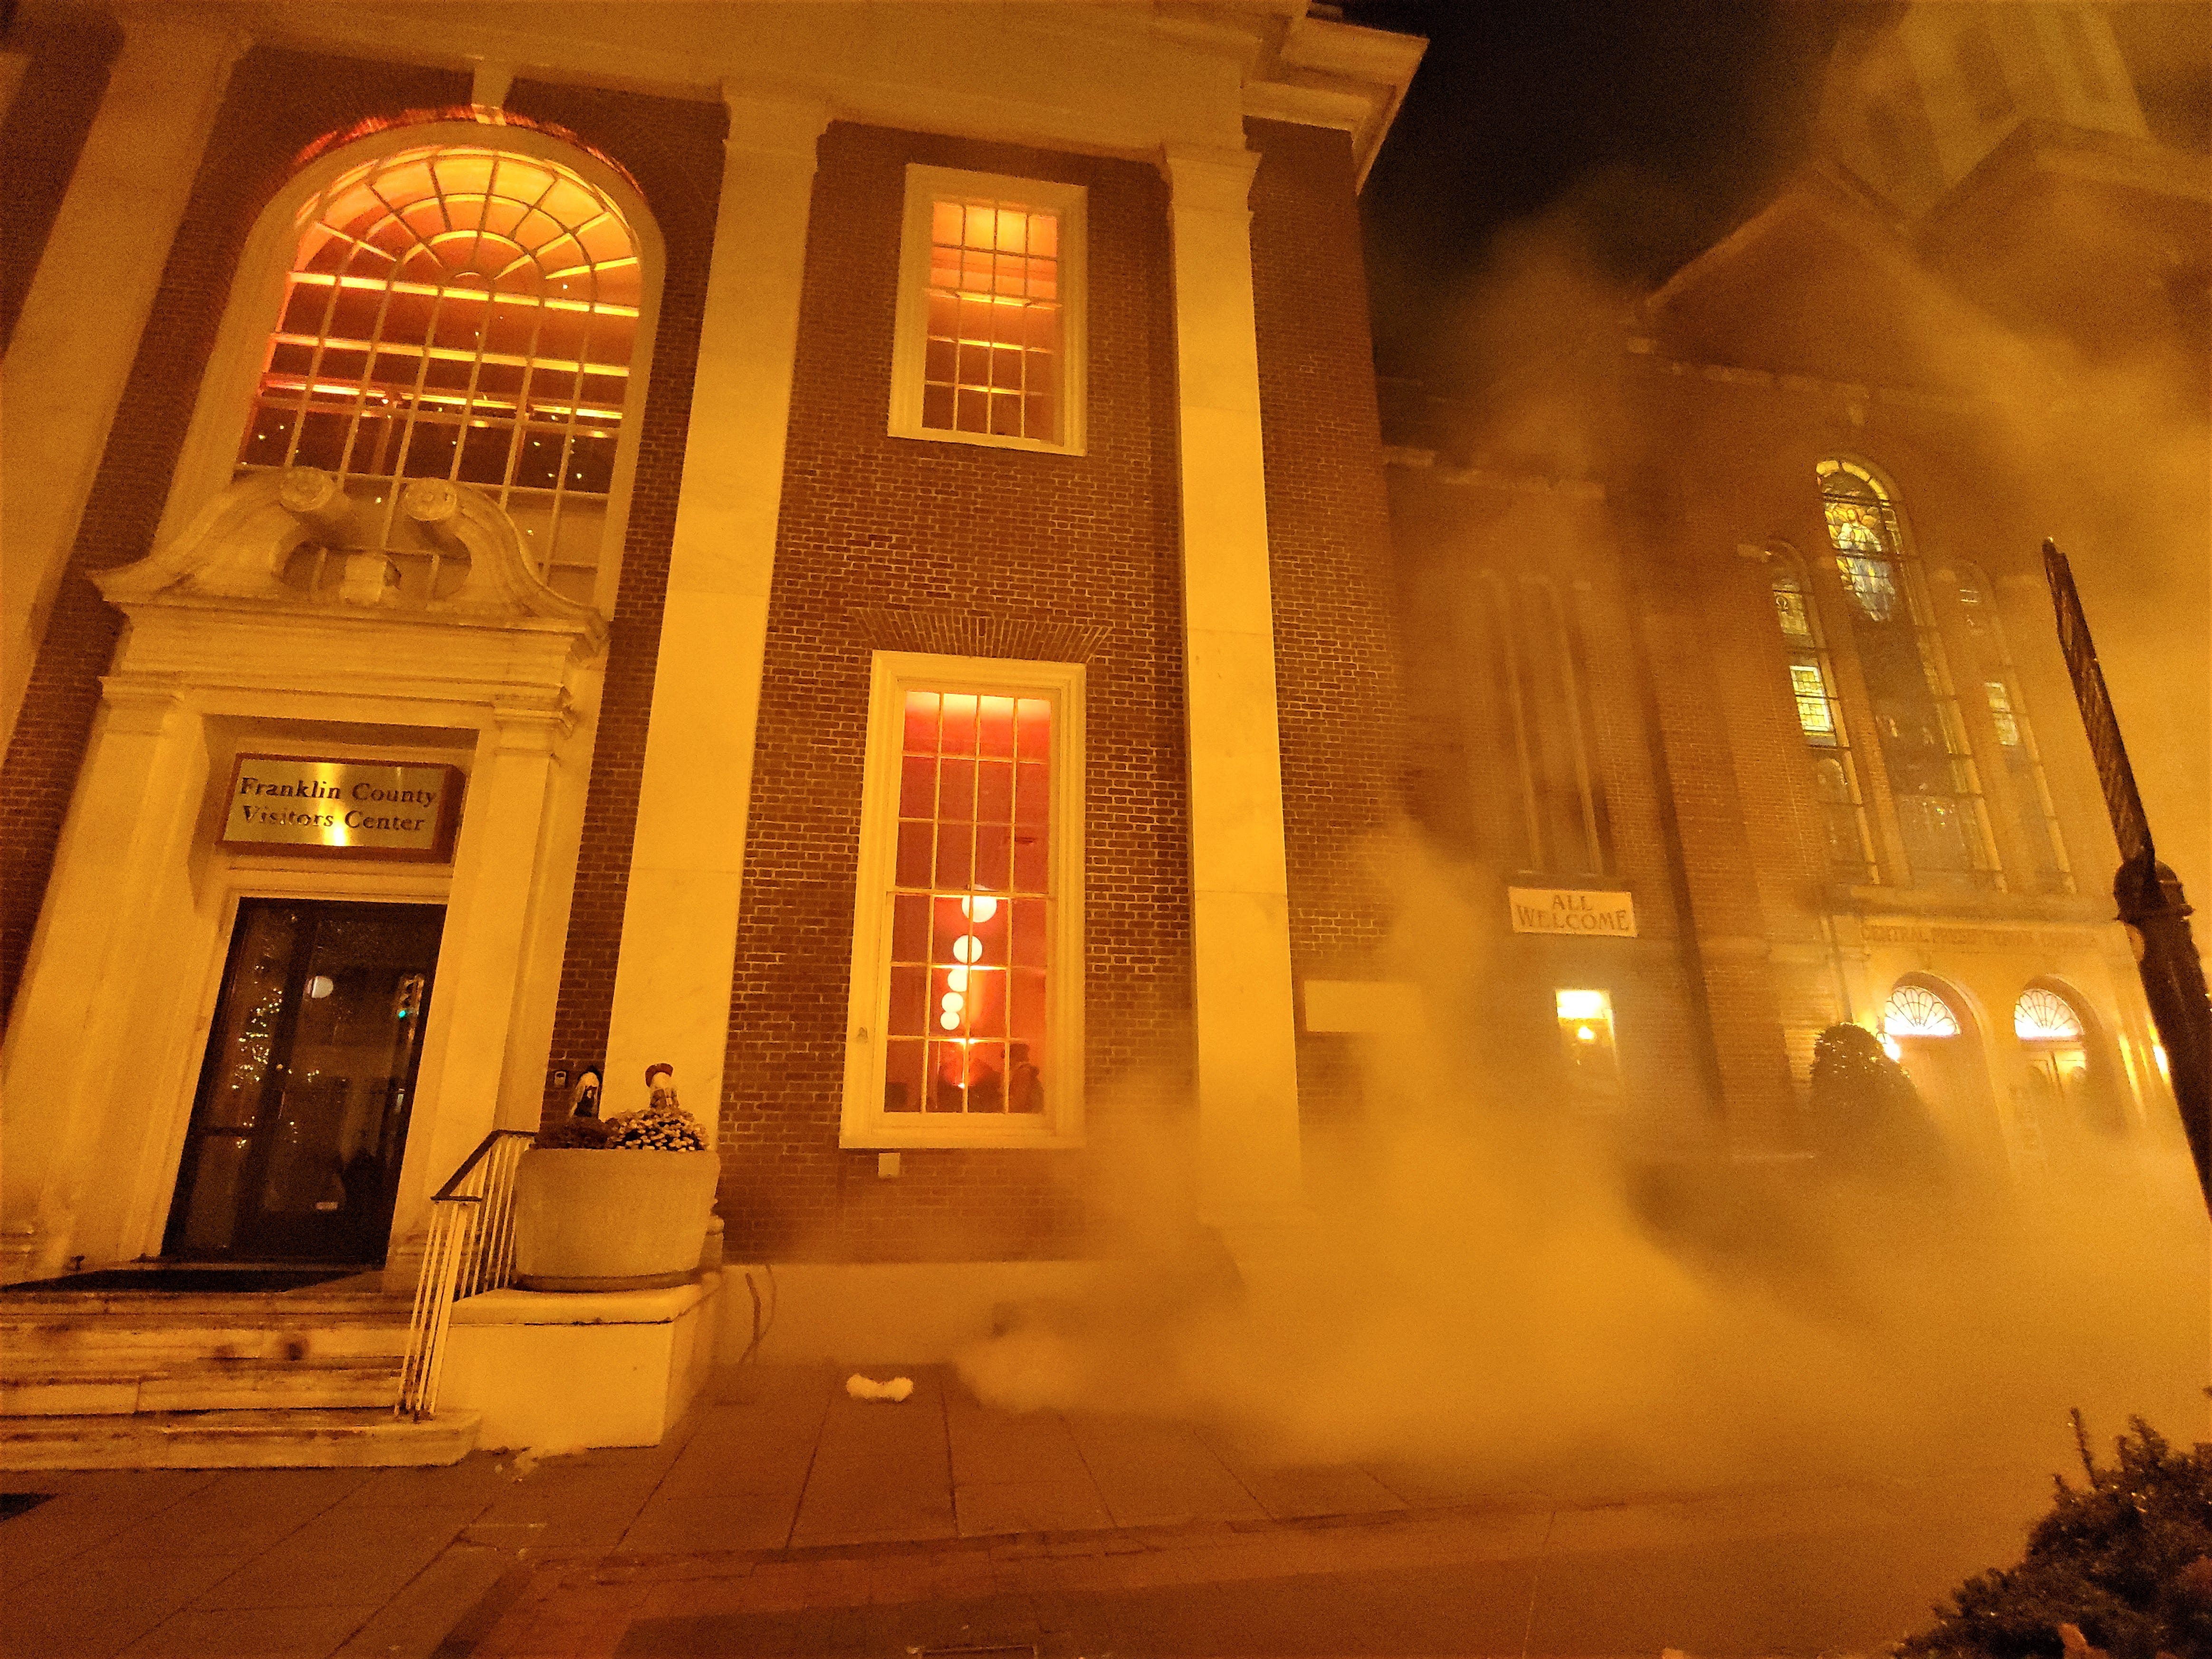 """Smoke billows outside the 11/30 Welcome Center and Franklin County Visitors Bureau during a reenaction of the burning of Chambersburg. Franklin County Visitors Bureau presented """"300 Year's of America's History,"""" including the 1864 Ransoming, Burning and Rebirth of Chambersburg, during the grand opening of the 11/30 Welcome Center on Saturday, Nov. 24, 2018. Featured were Andy Newman, Bryton Zook, Carlos Lee, Charles Rittenhouse, David Moore, Dawn Snider, Emily Martin, John Shindledecker, Nancy Godfrey and Susan Wall."""